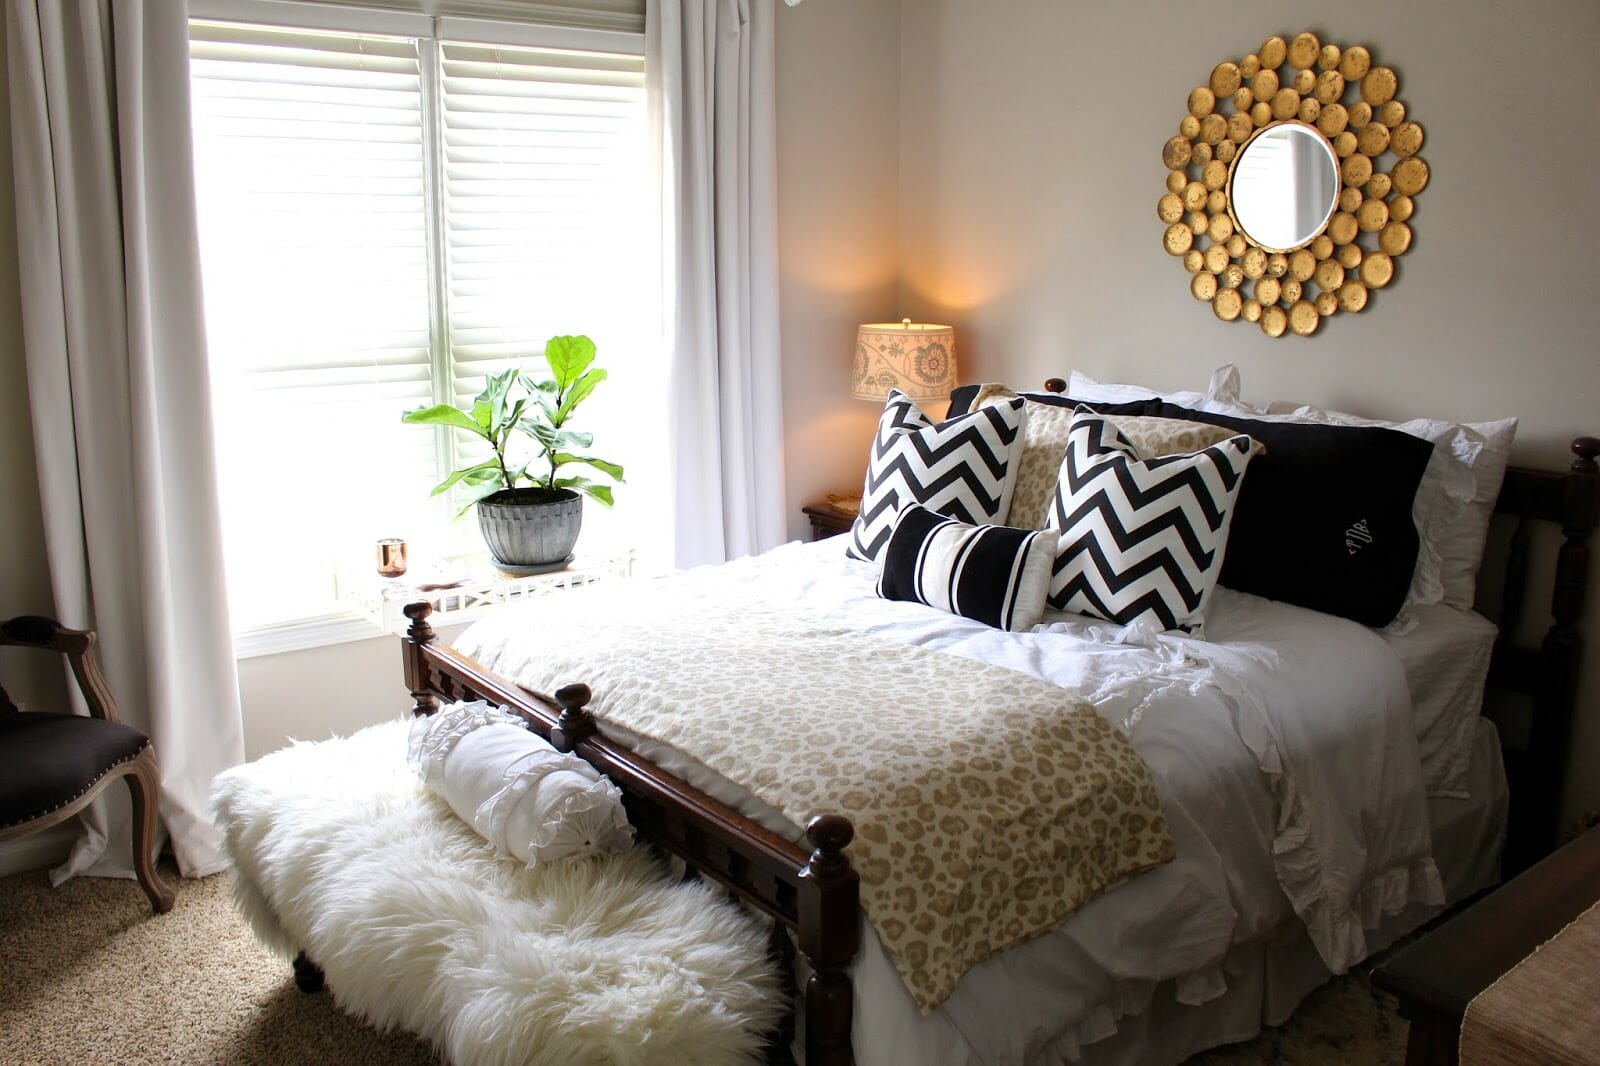 Top 5 Decor Tips For Creating The Perfect Guest Room